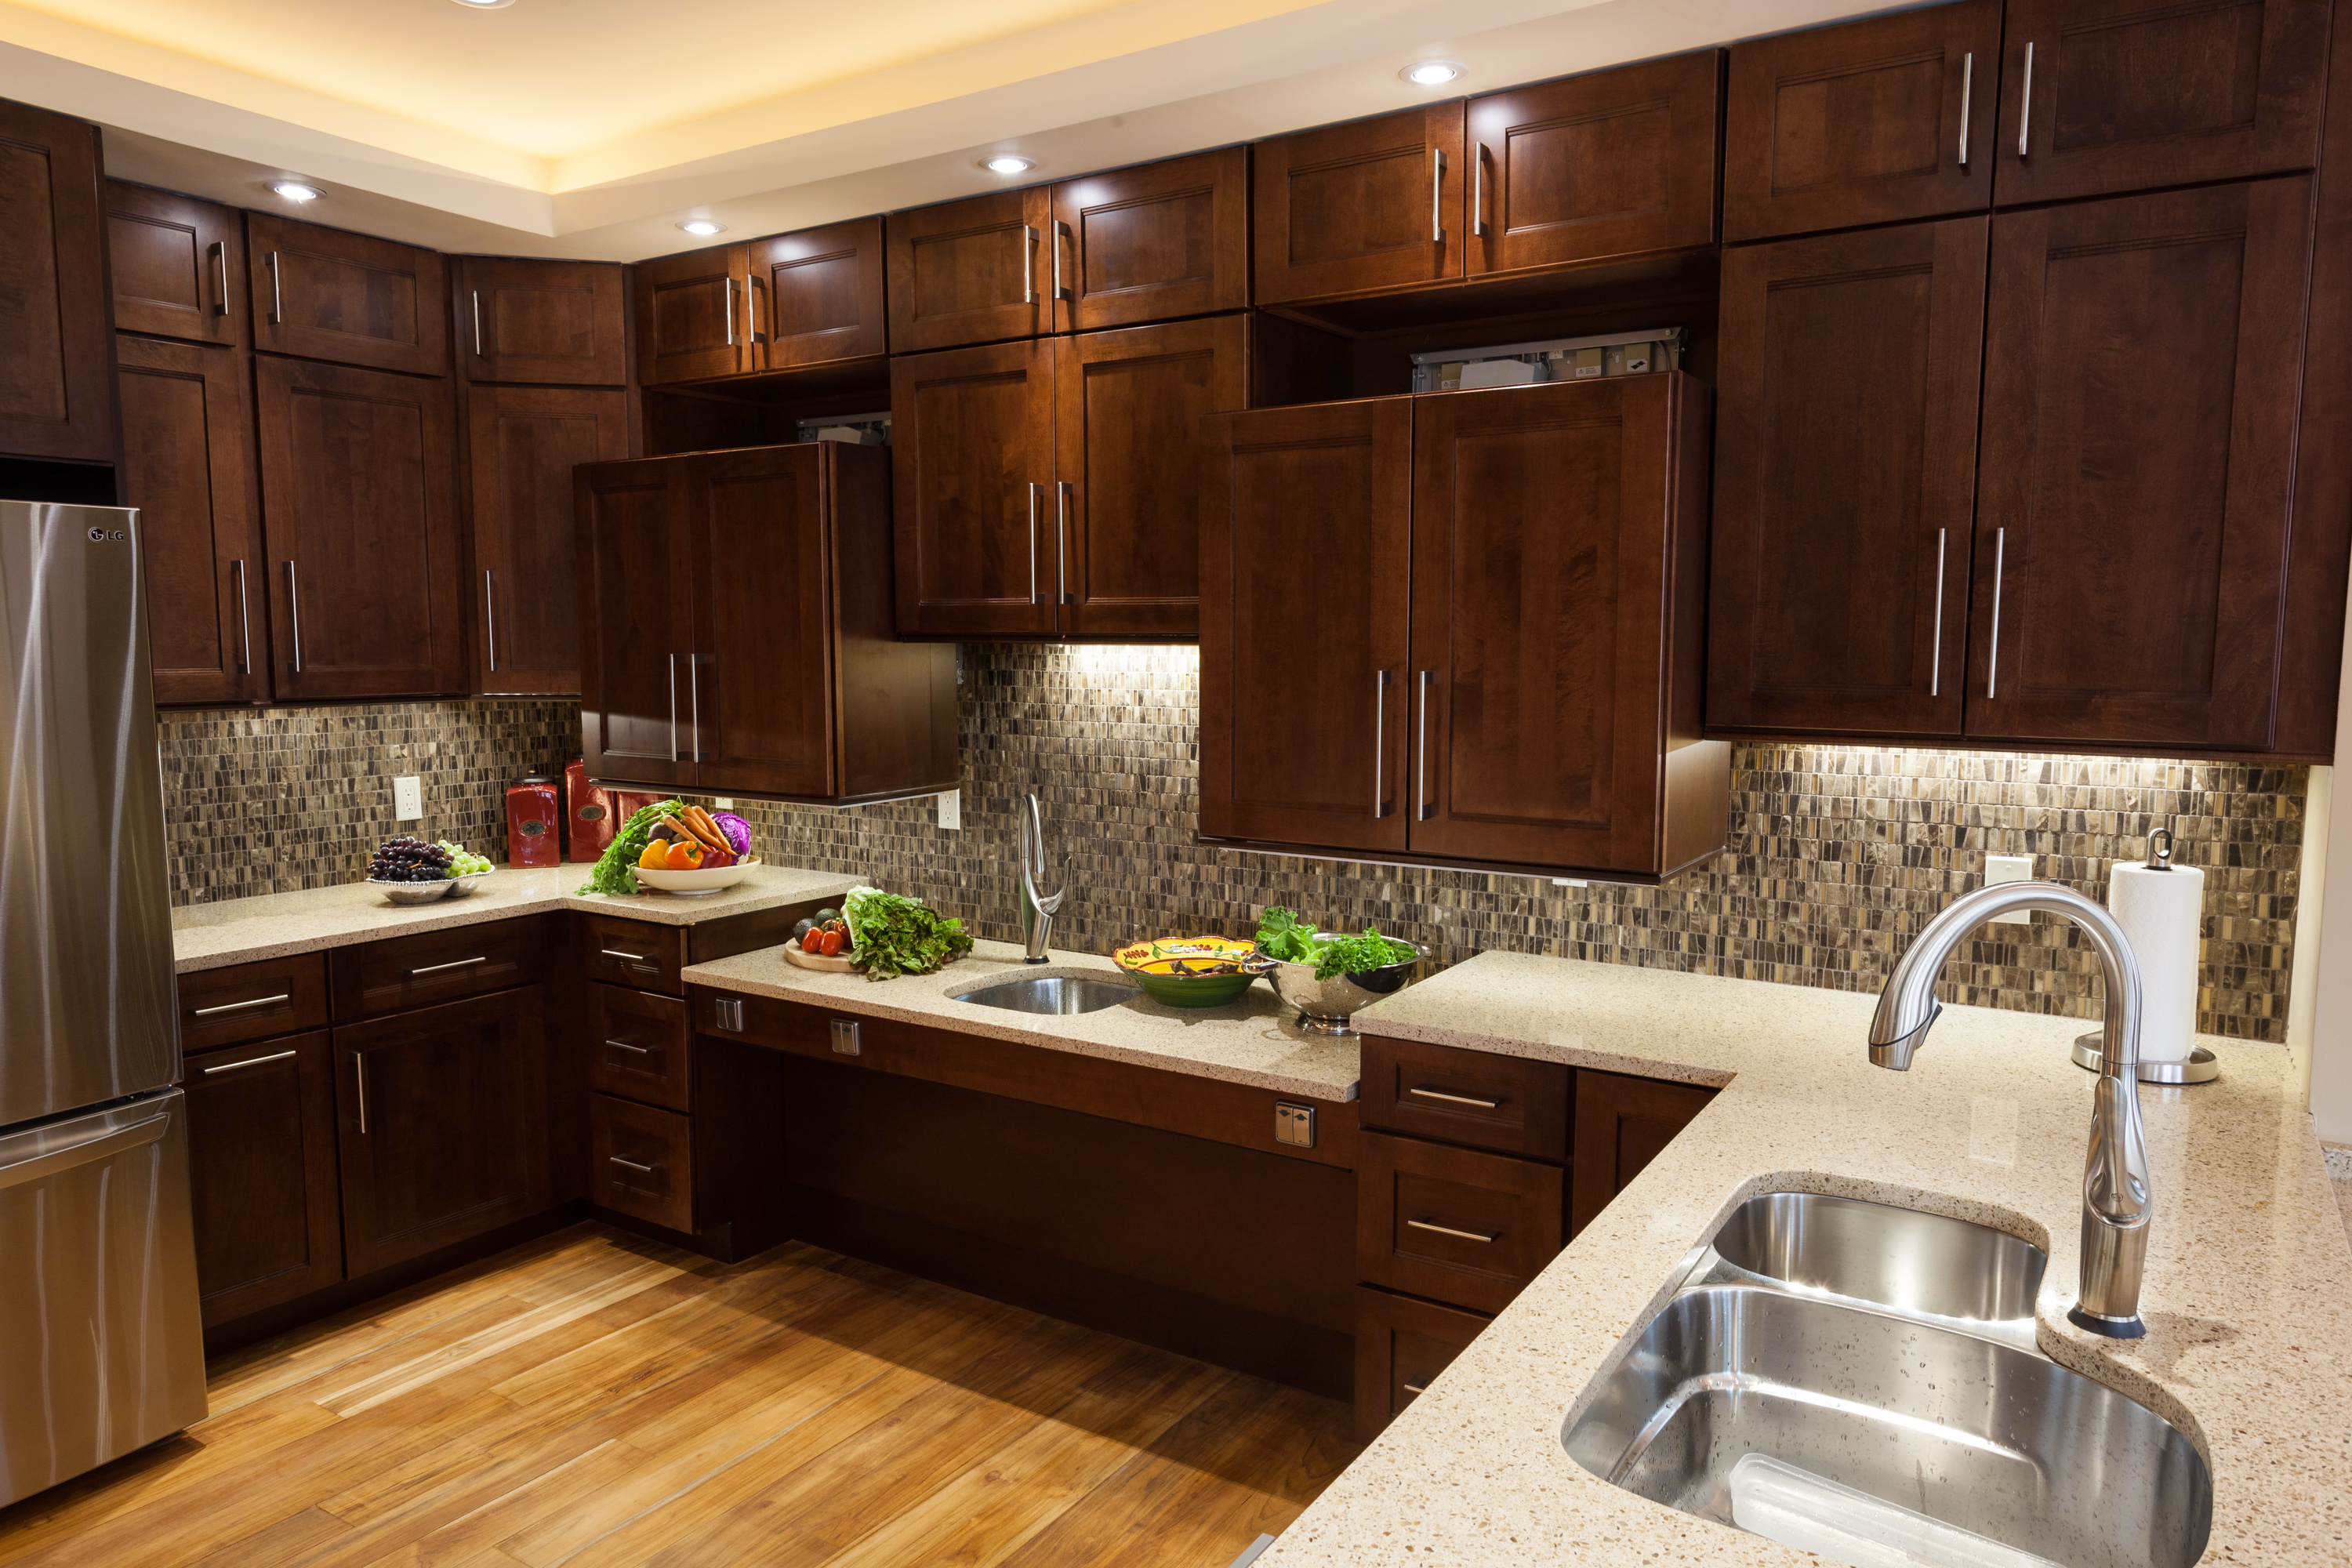 Universal Design Kitchen Cabinets Roll Under North Coast Accessible Homes